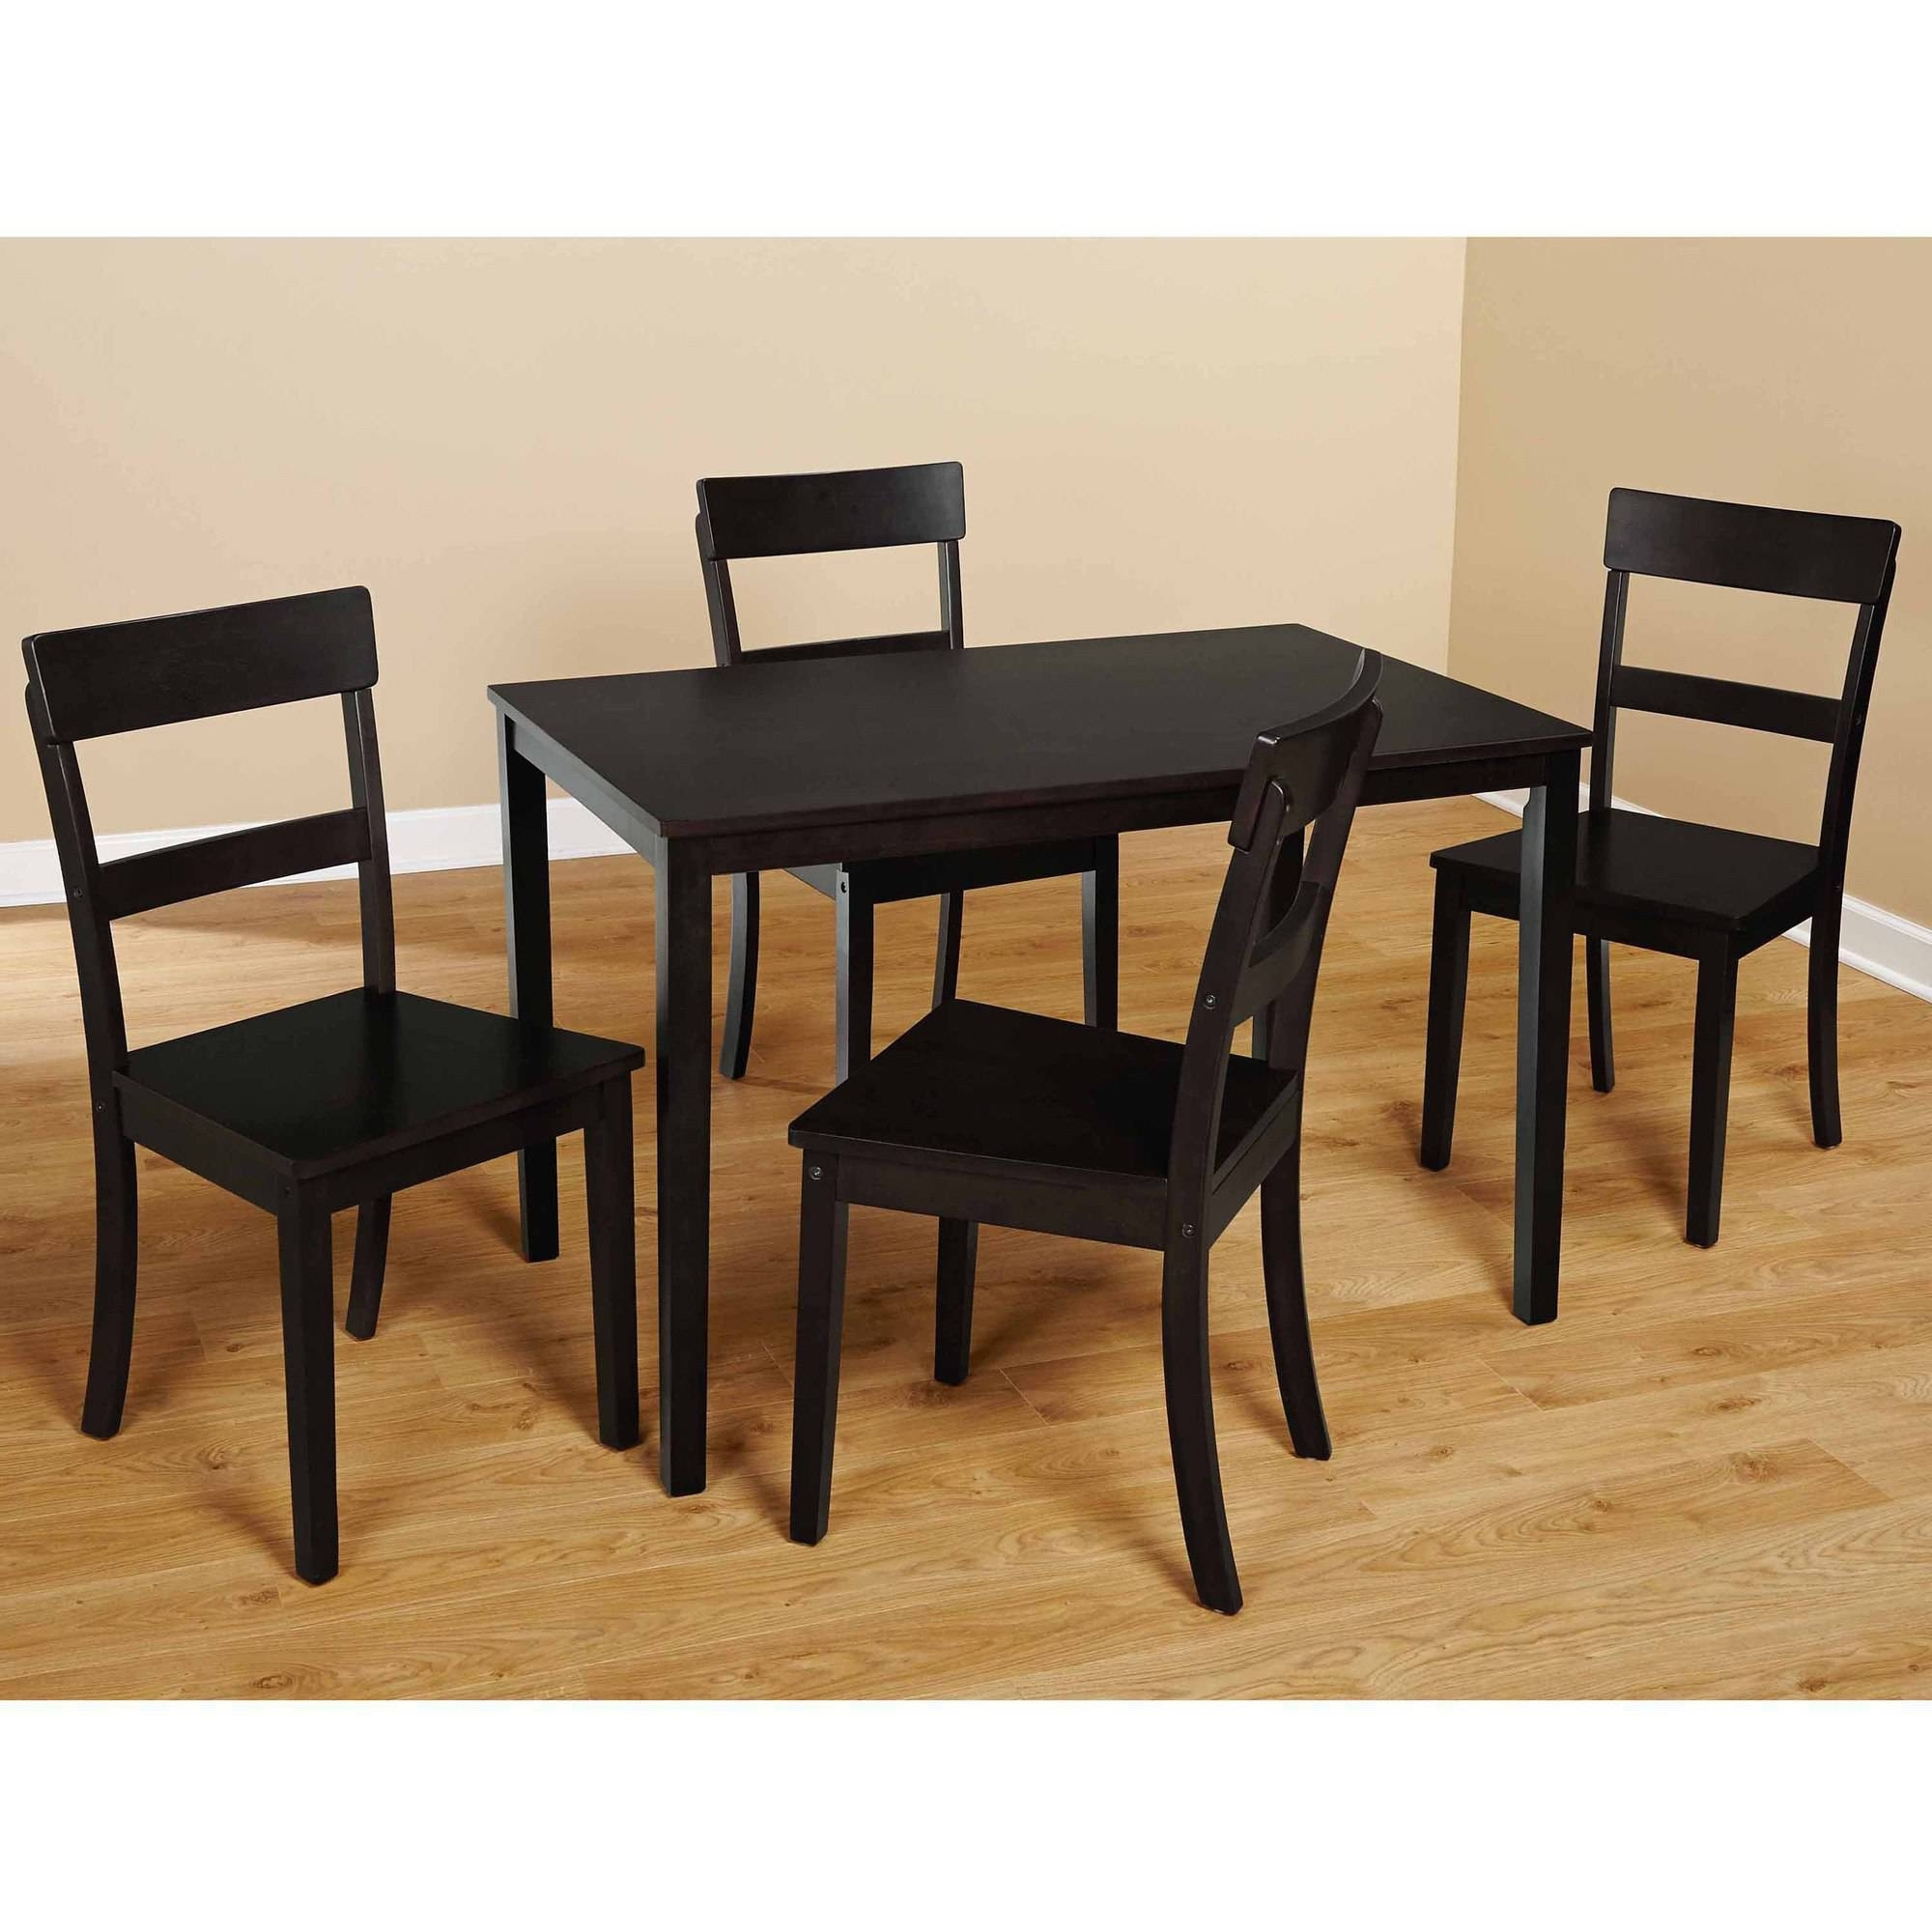 Fashionable Delfina 7 Piece Dining Sets With Regard To Dining Sets Under $200 – Walmart (View 8 of 25)